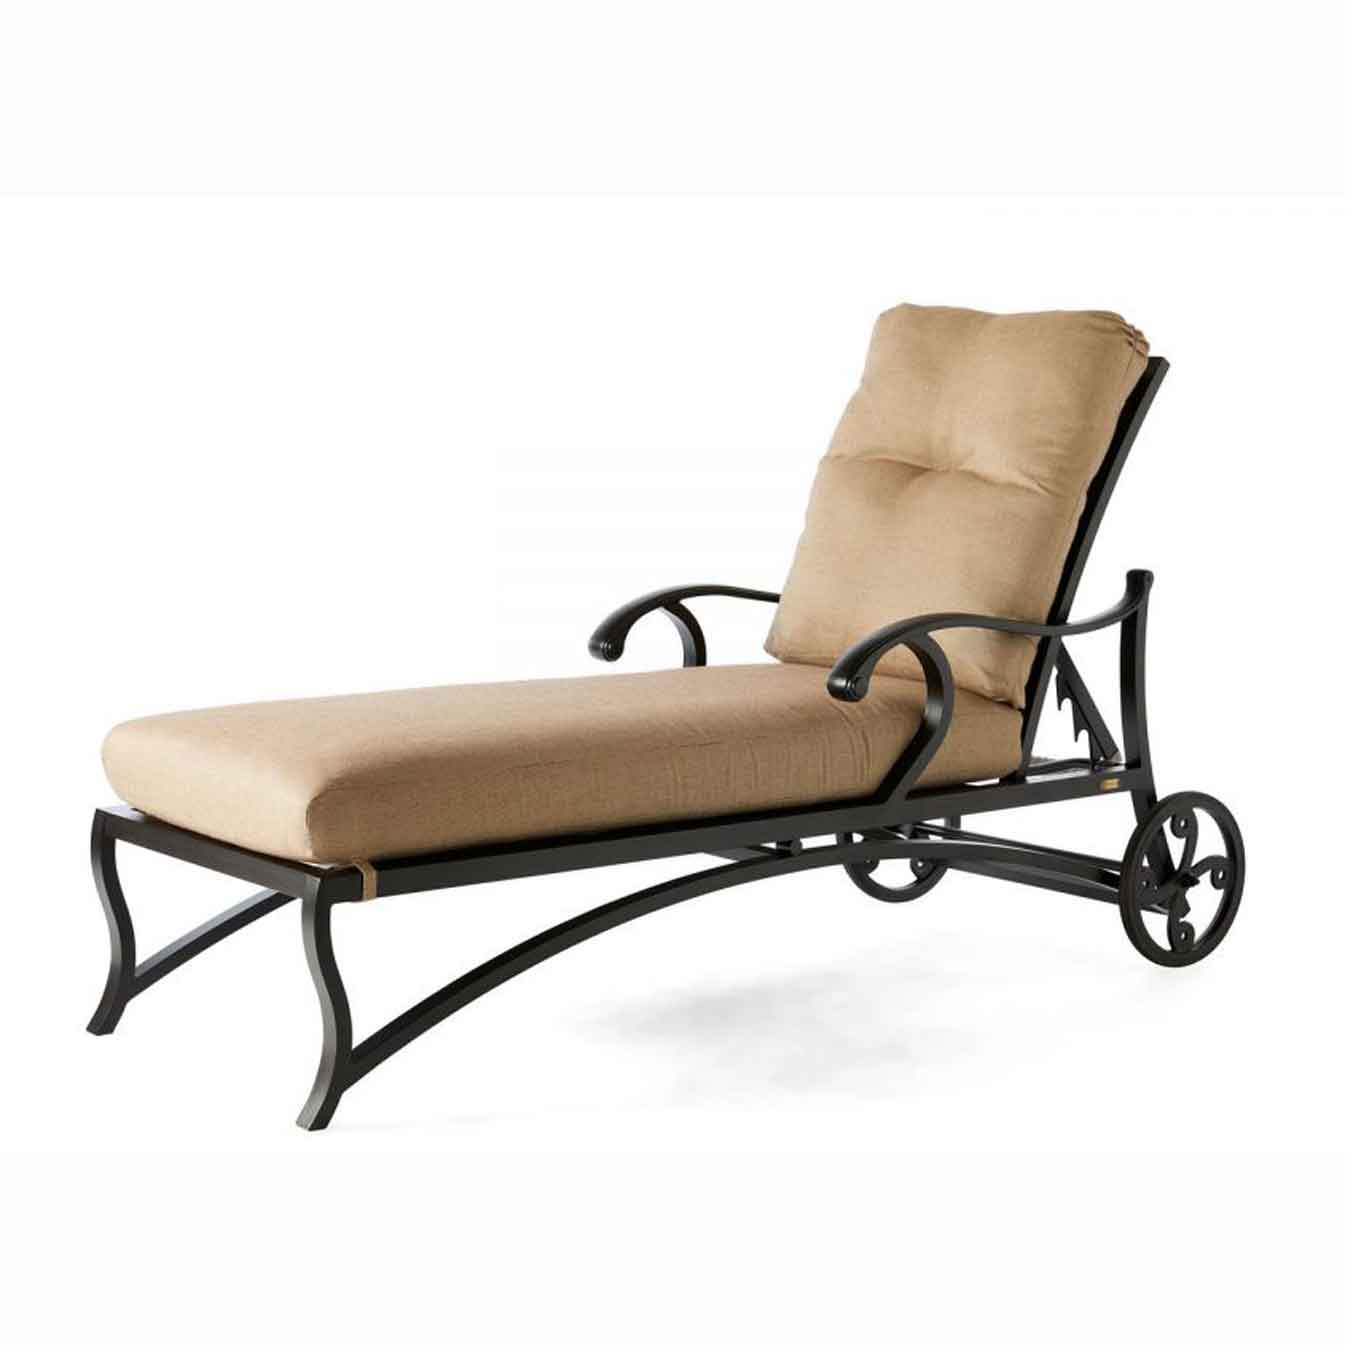 Volare Cushion Adjustable Chaise - Rochelle Pebble